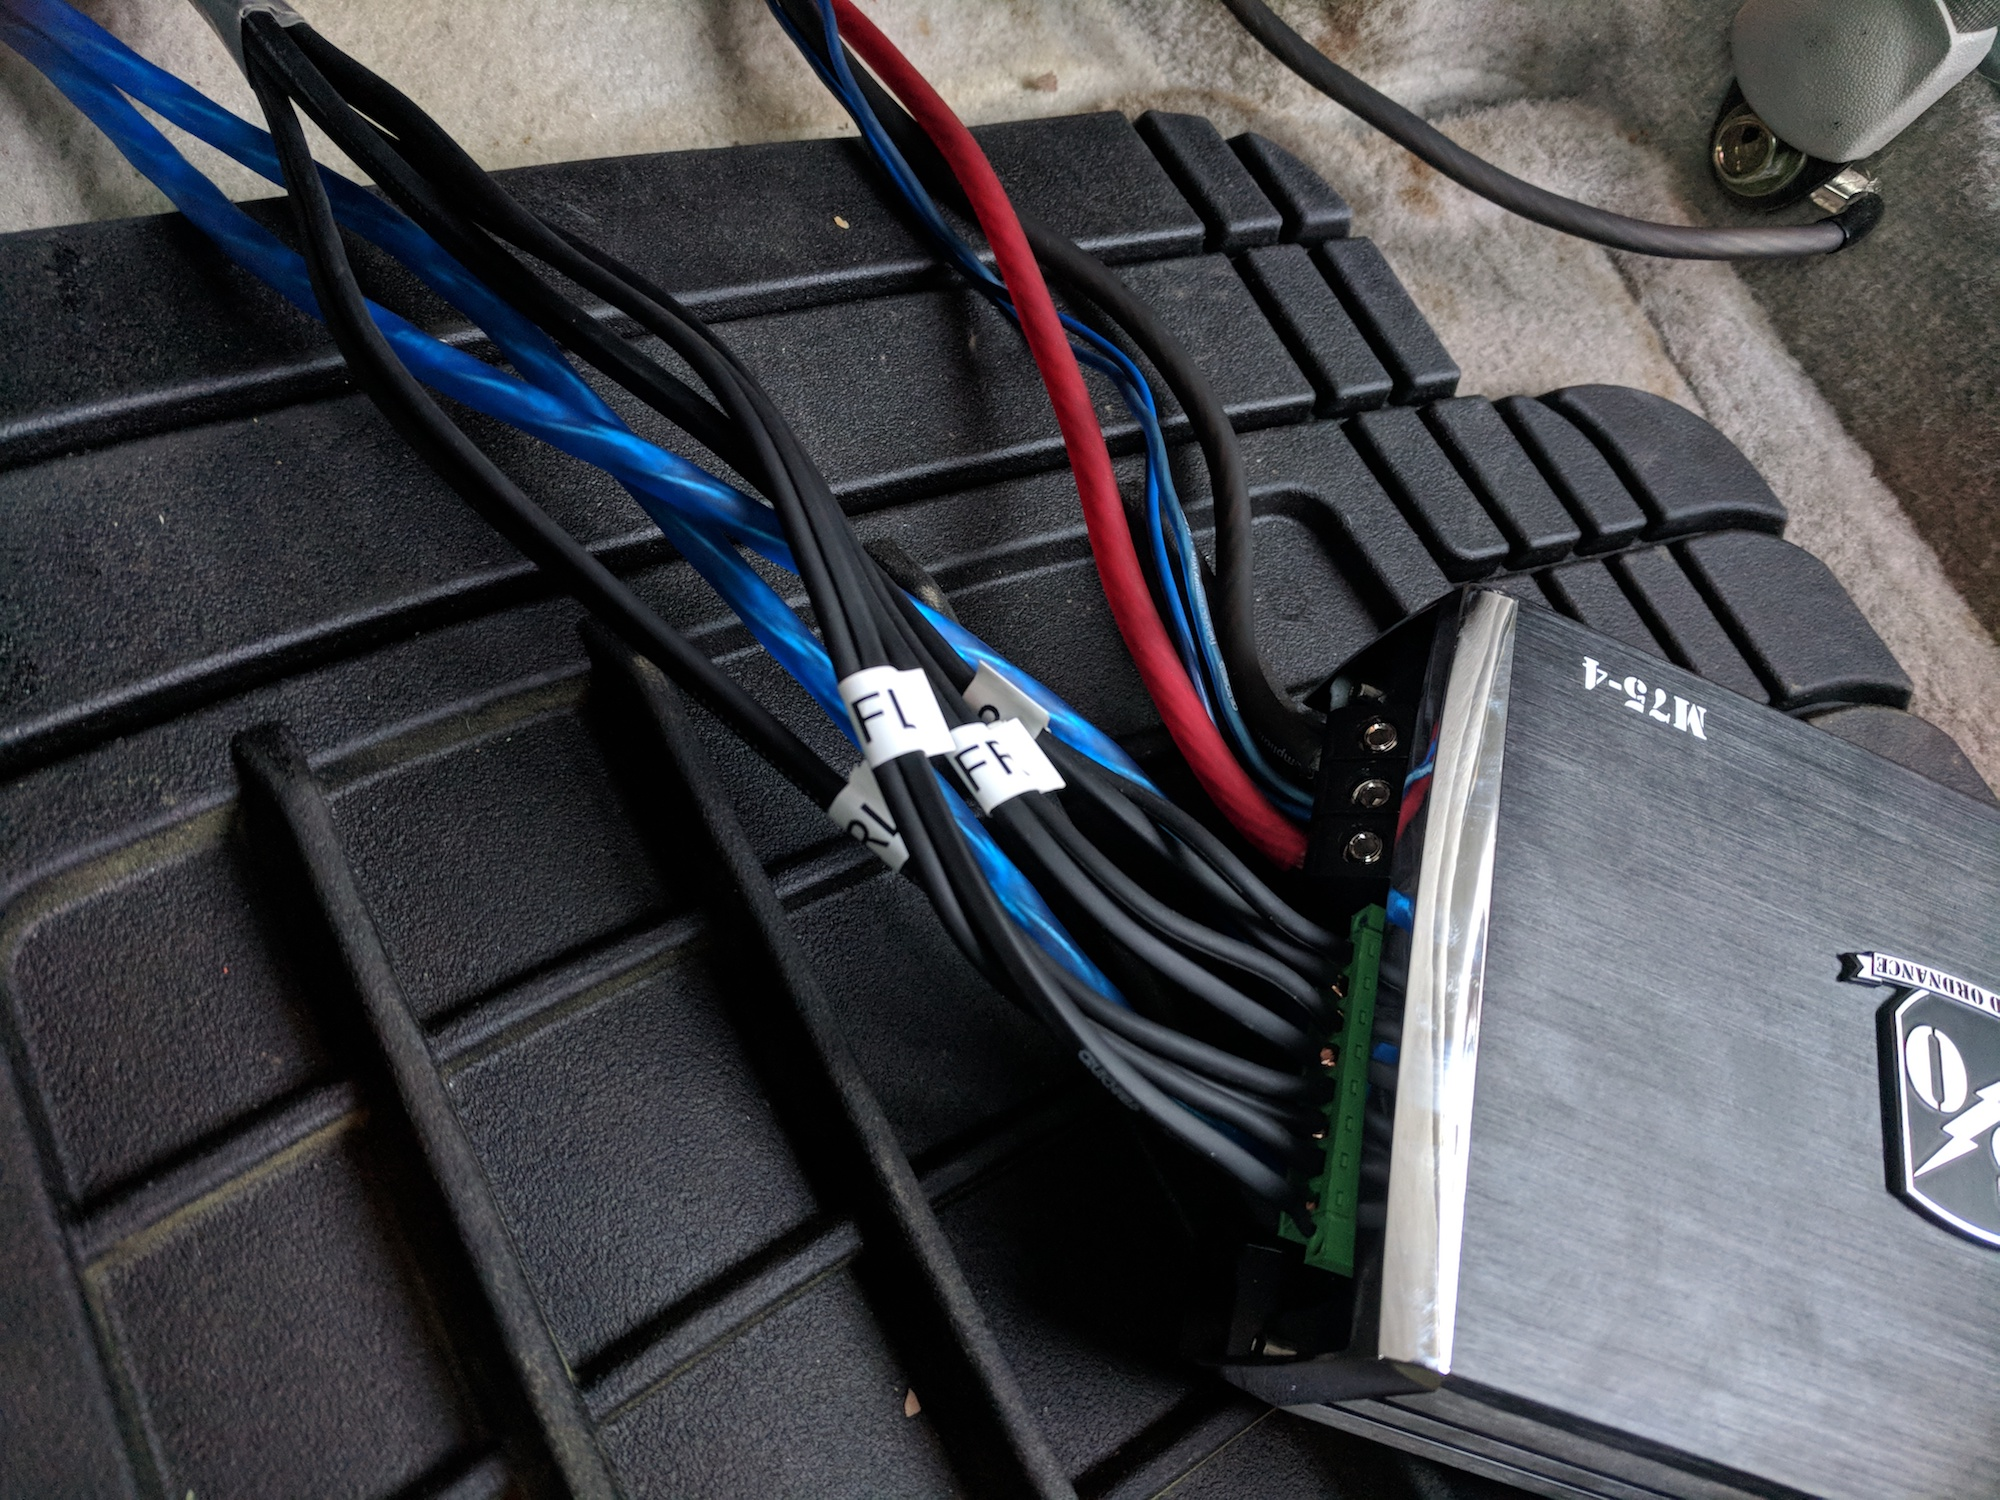 2001 Nissan Maxima Wiring Diagram As Well As 2001 Nissan Maxima Wiring